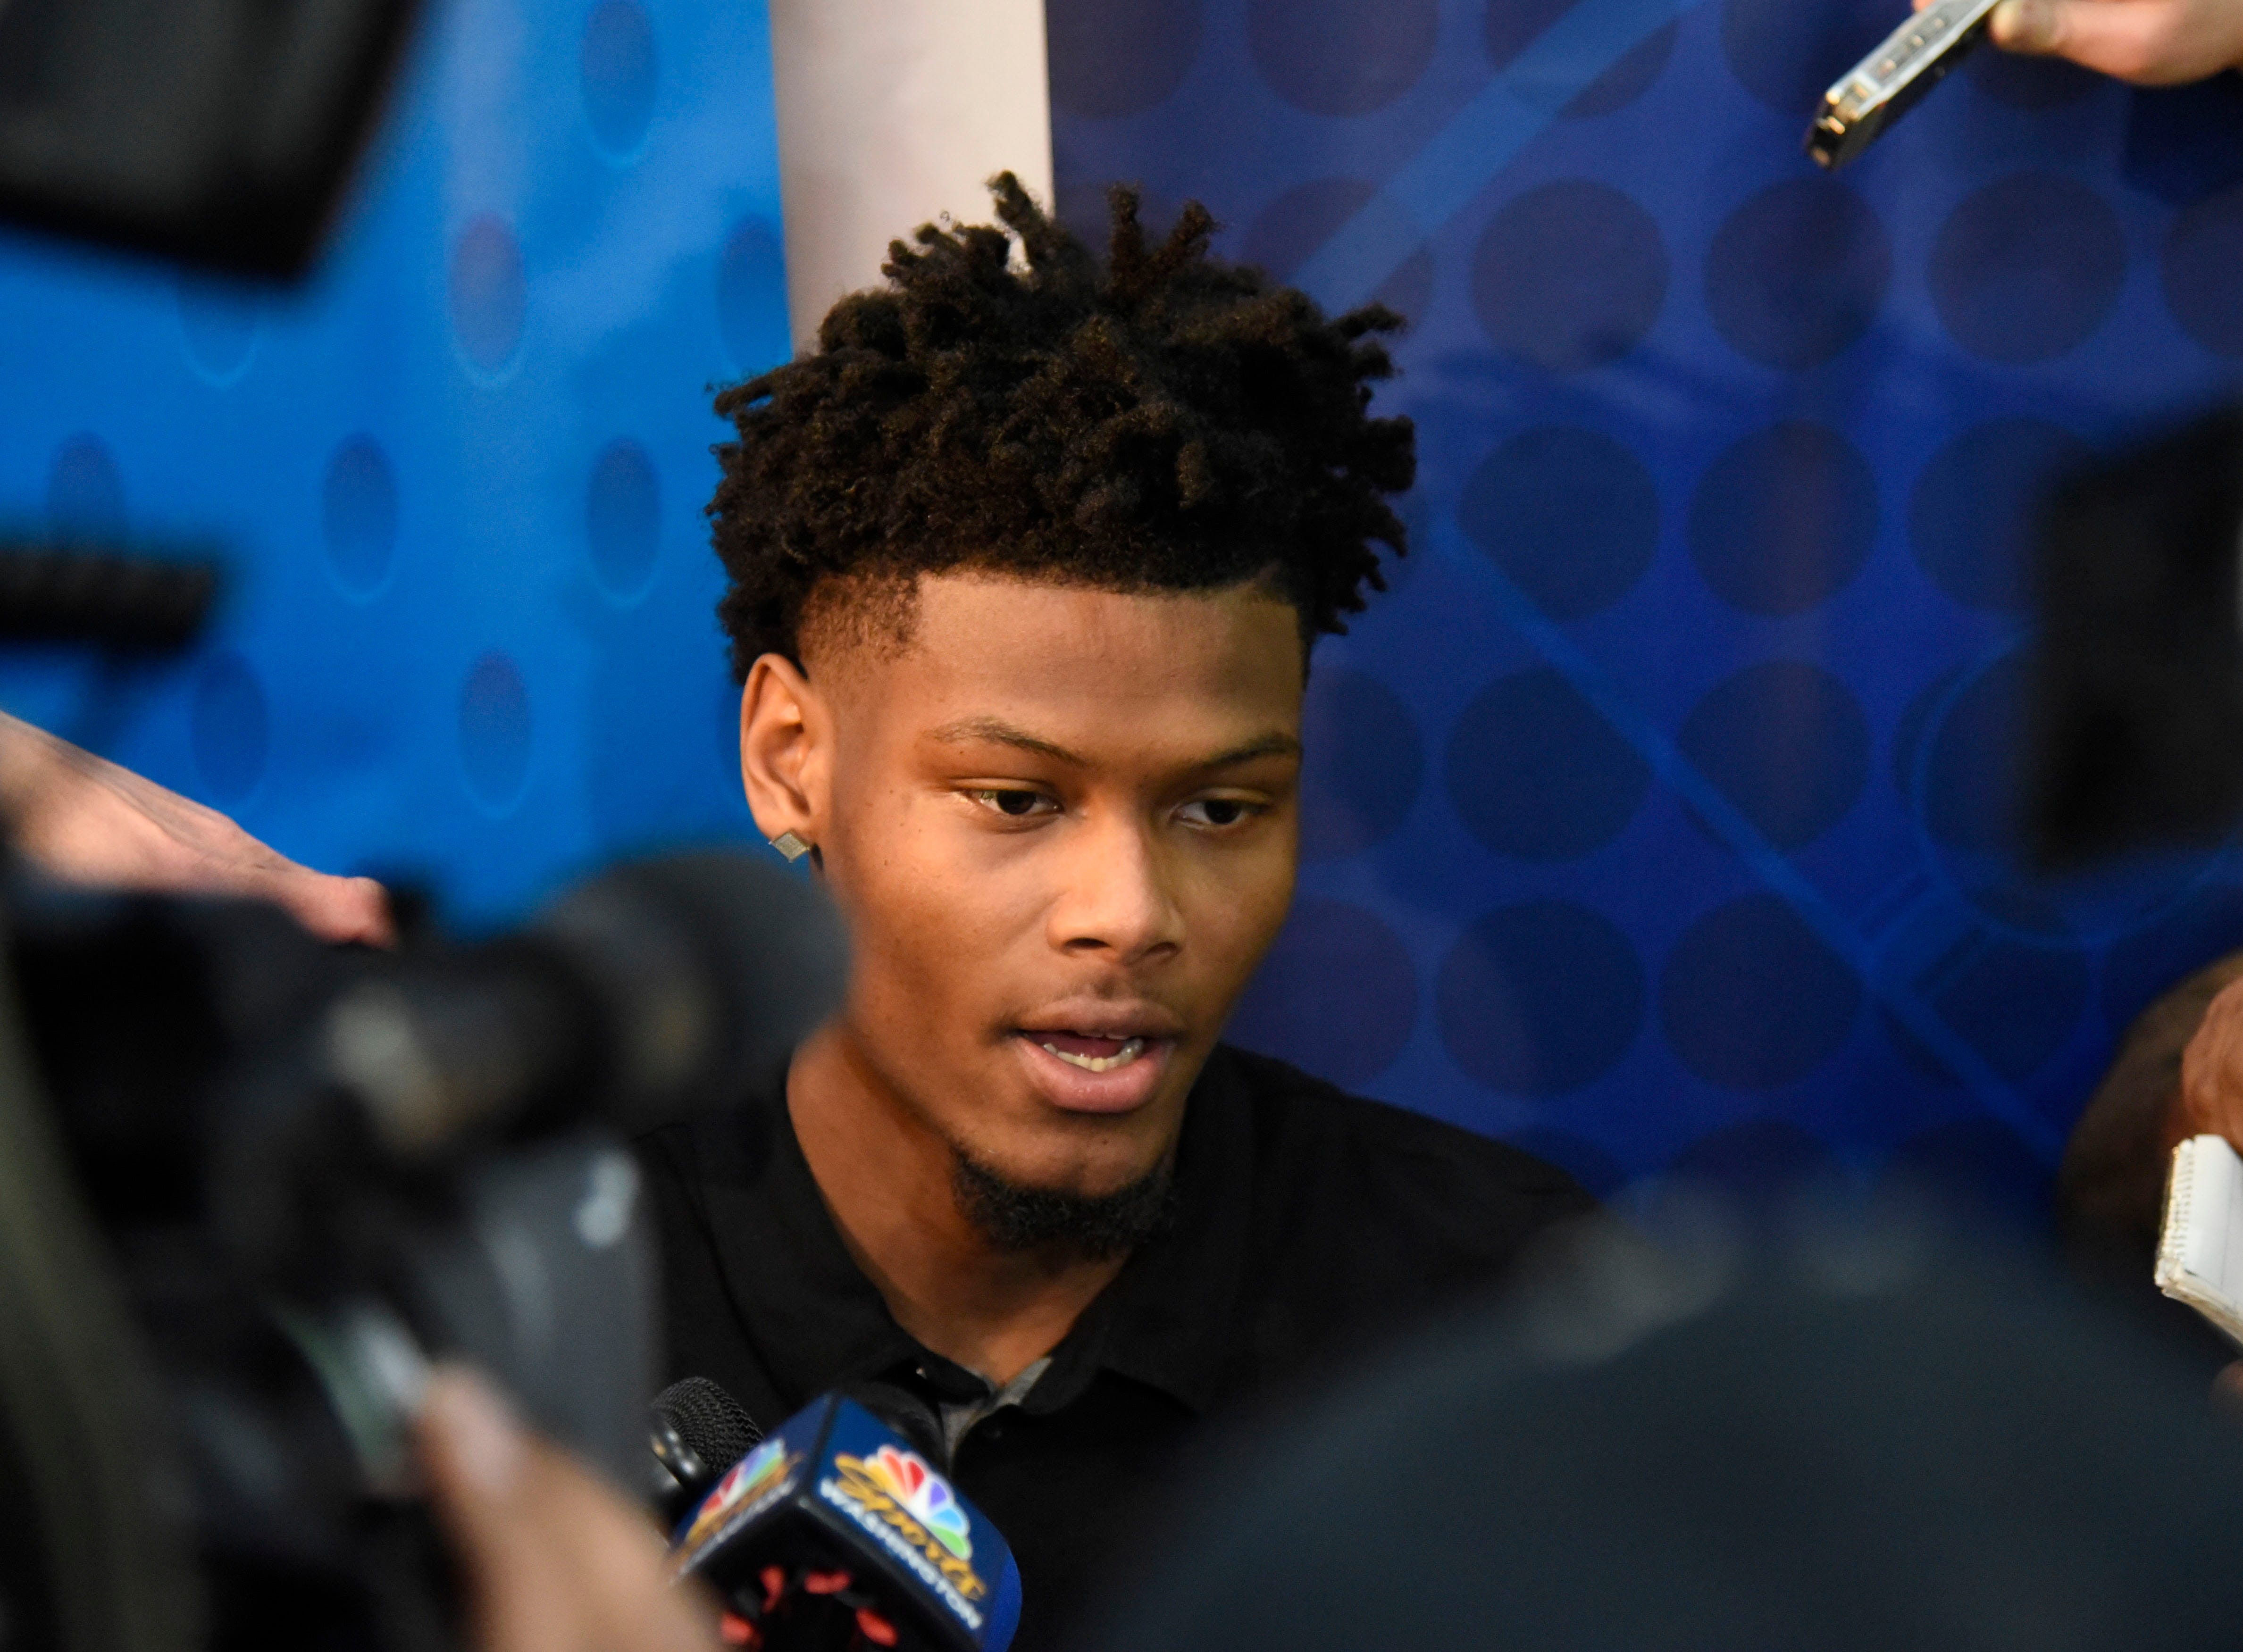 Cam Reddish speaks with the media during the NBA draft combine in Chicago.